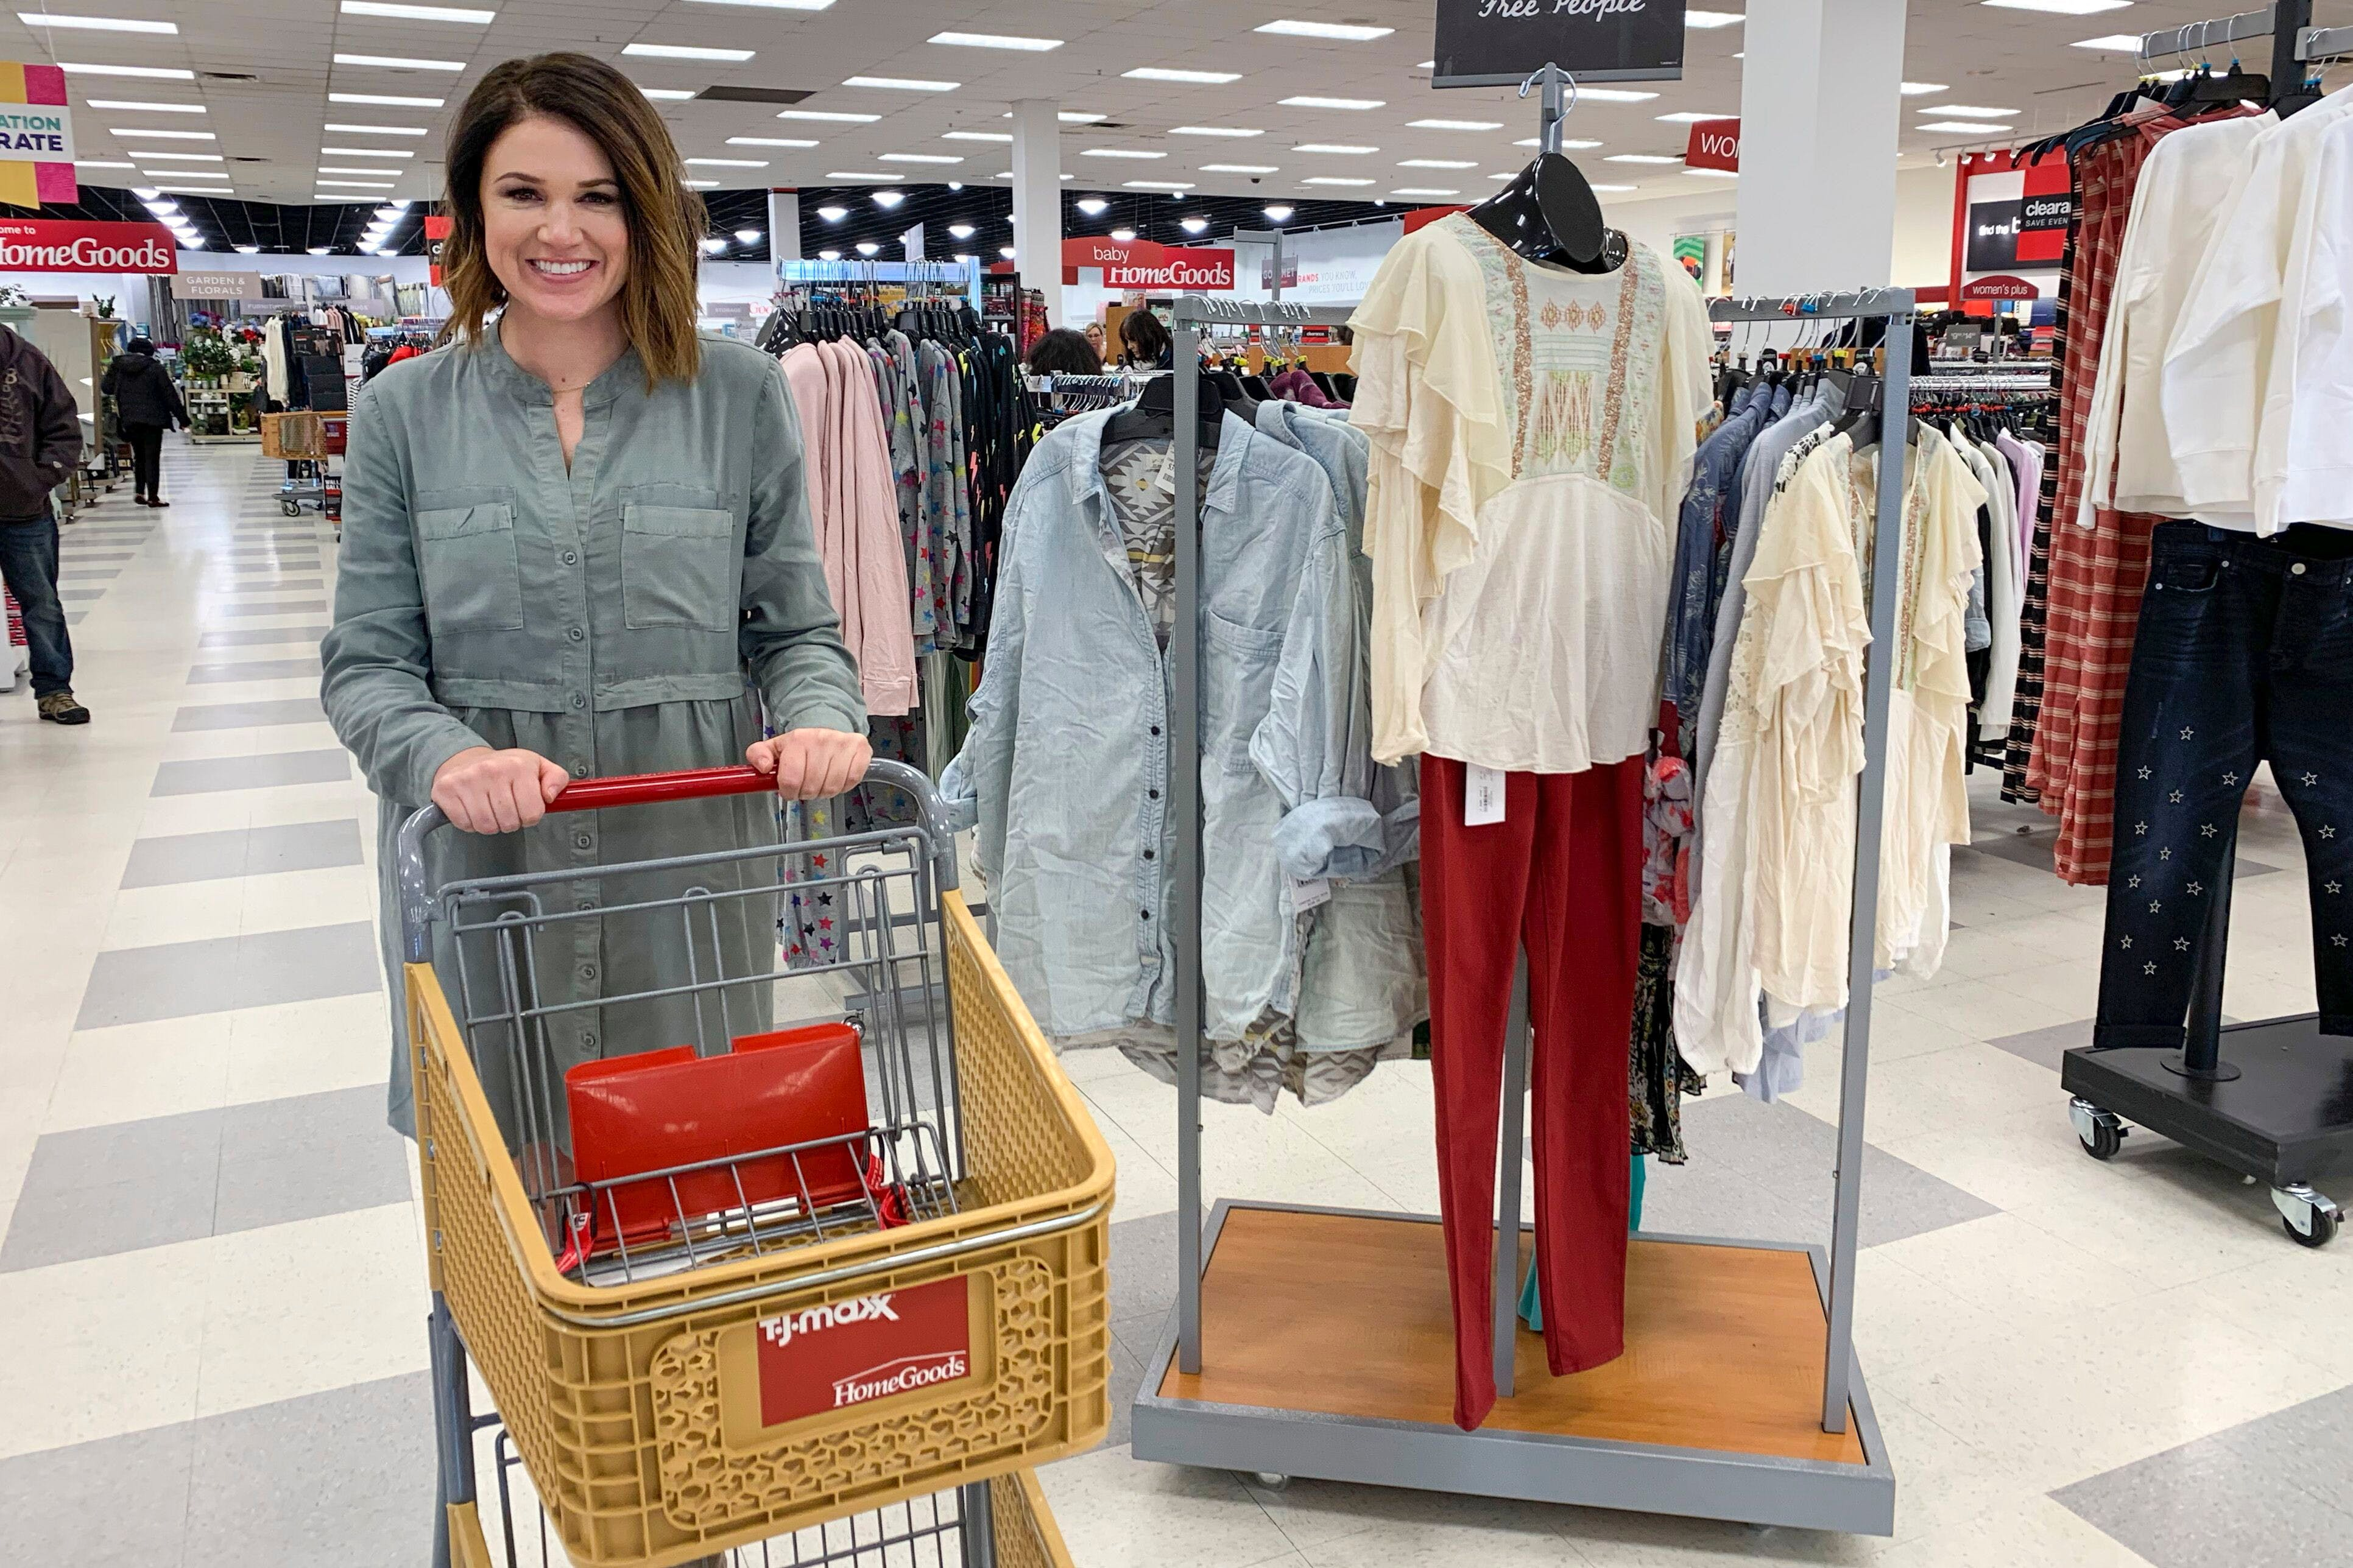 7 Freaking Amazing Ways to Save at T.J.Maxx - The Krazy Coupon Lady